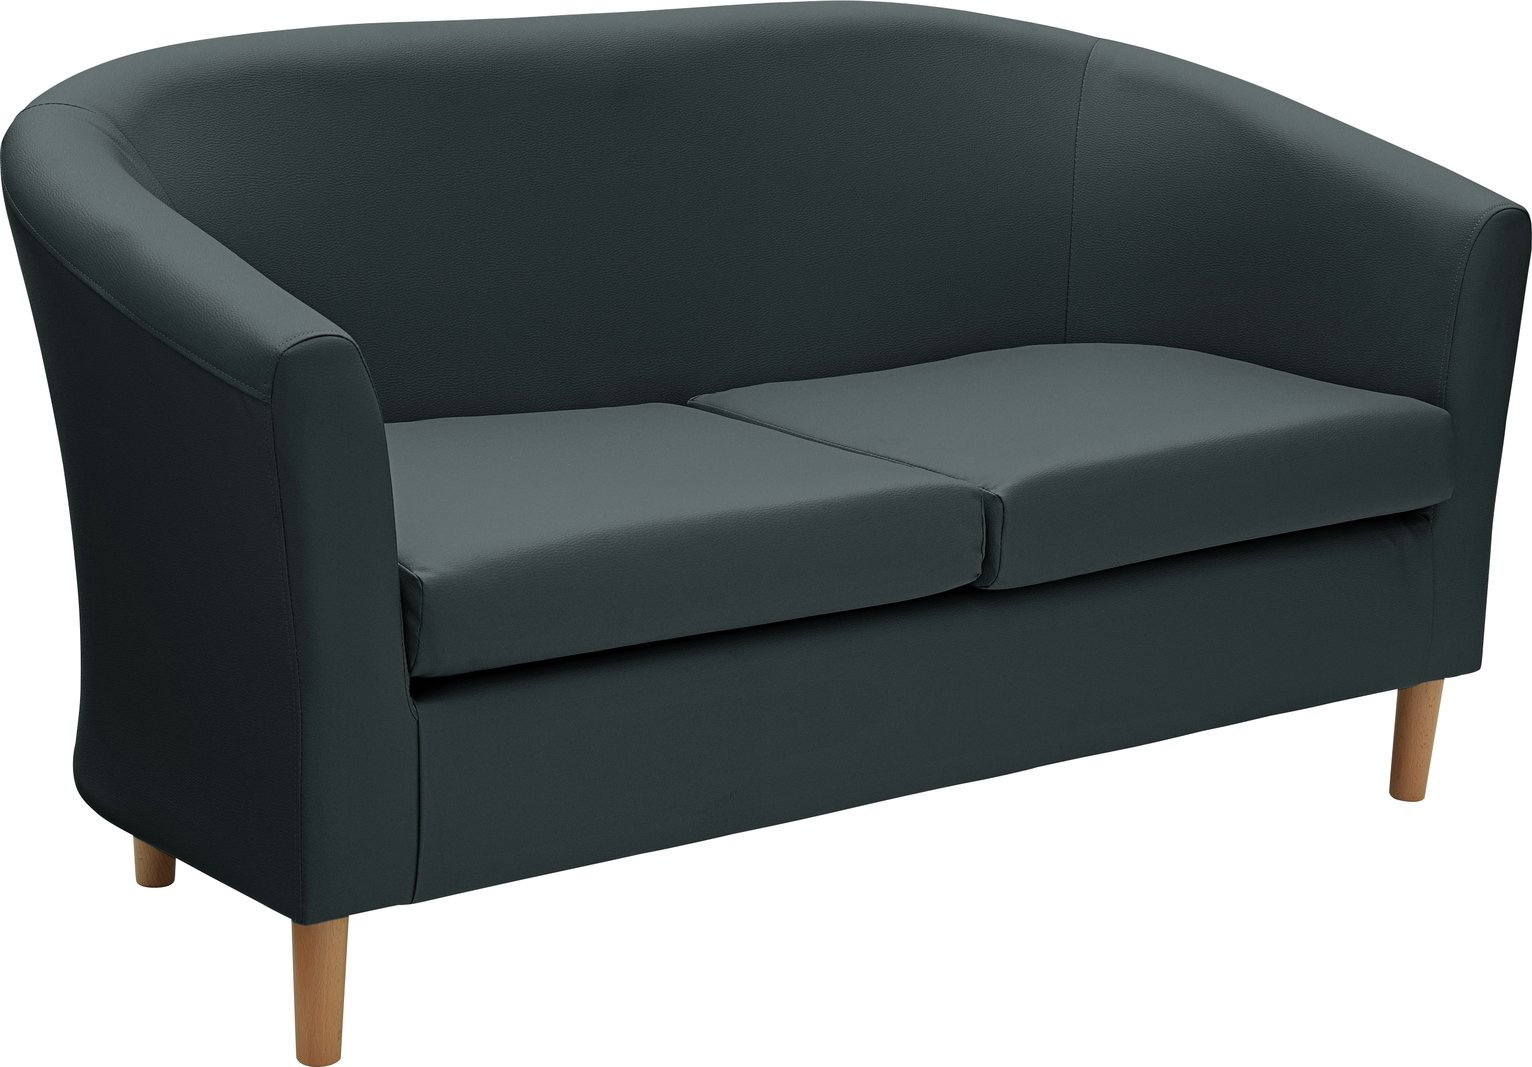 Sale On Argos Home 2 Seater Leather Effect Tub Sofa